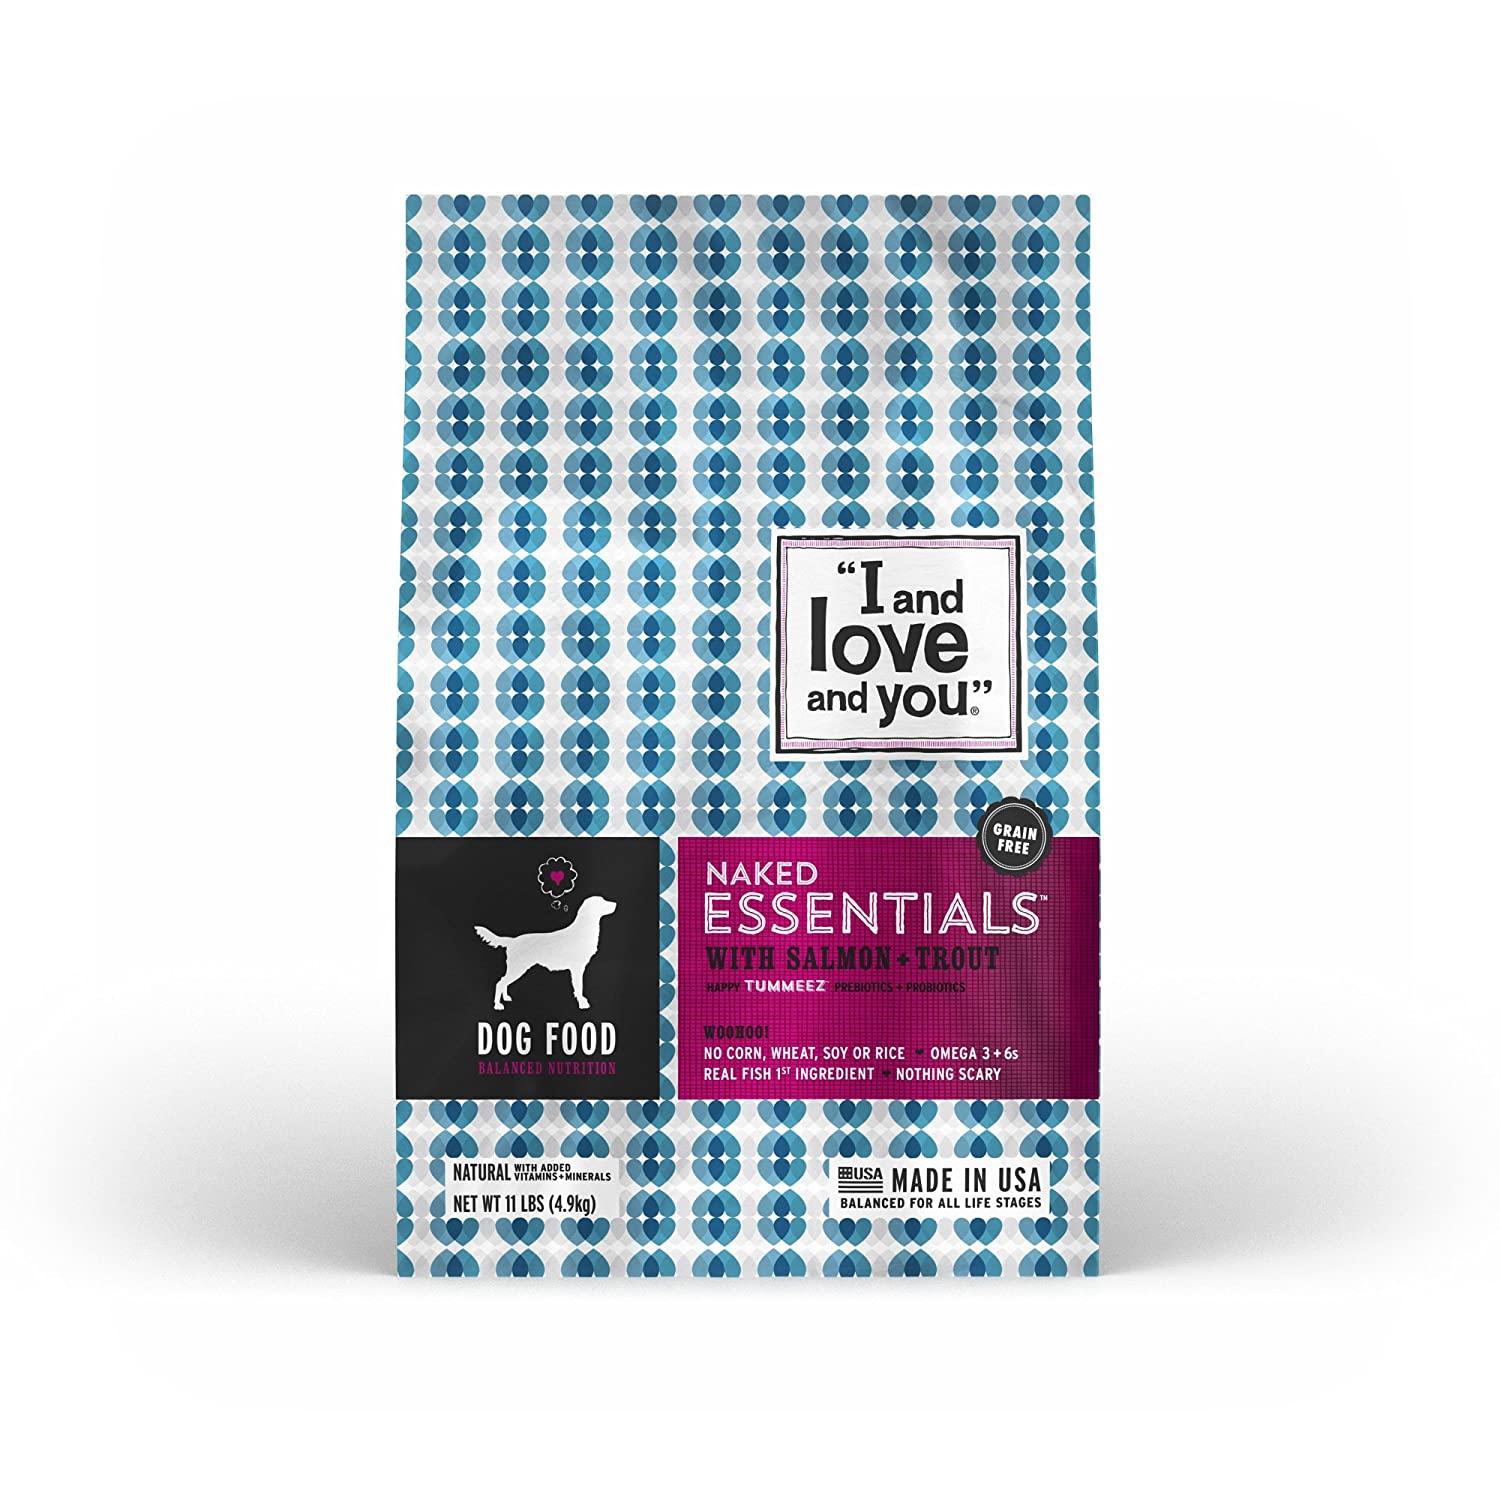 """I and love and you"" Naked Essentials Salmon & Trout Grain Free Dry Dog Food, 11 LB"